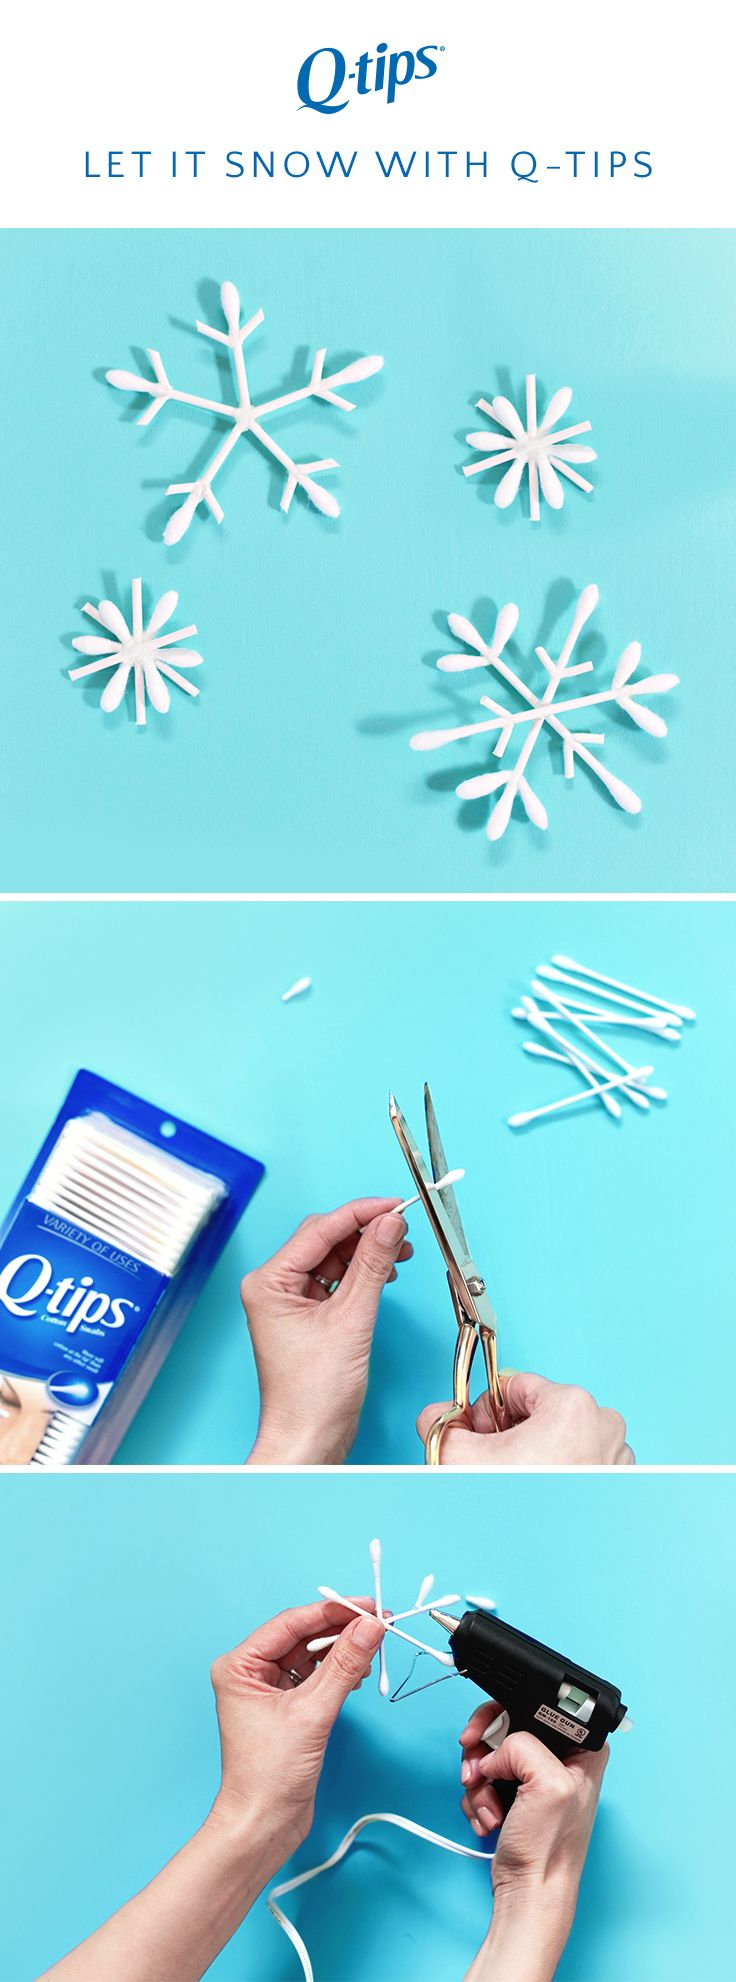 Here's an easy winter craft idea for kids from @LovelyIndeed. All you need is Q-tips cotton swabs, scissors, and hot glue. Q-tips cotton swabs have a flexible stick so they're strong enough to hang from a tree or frosted windowpane.